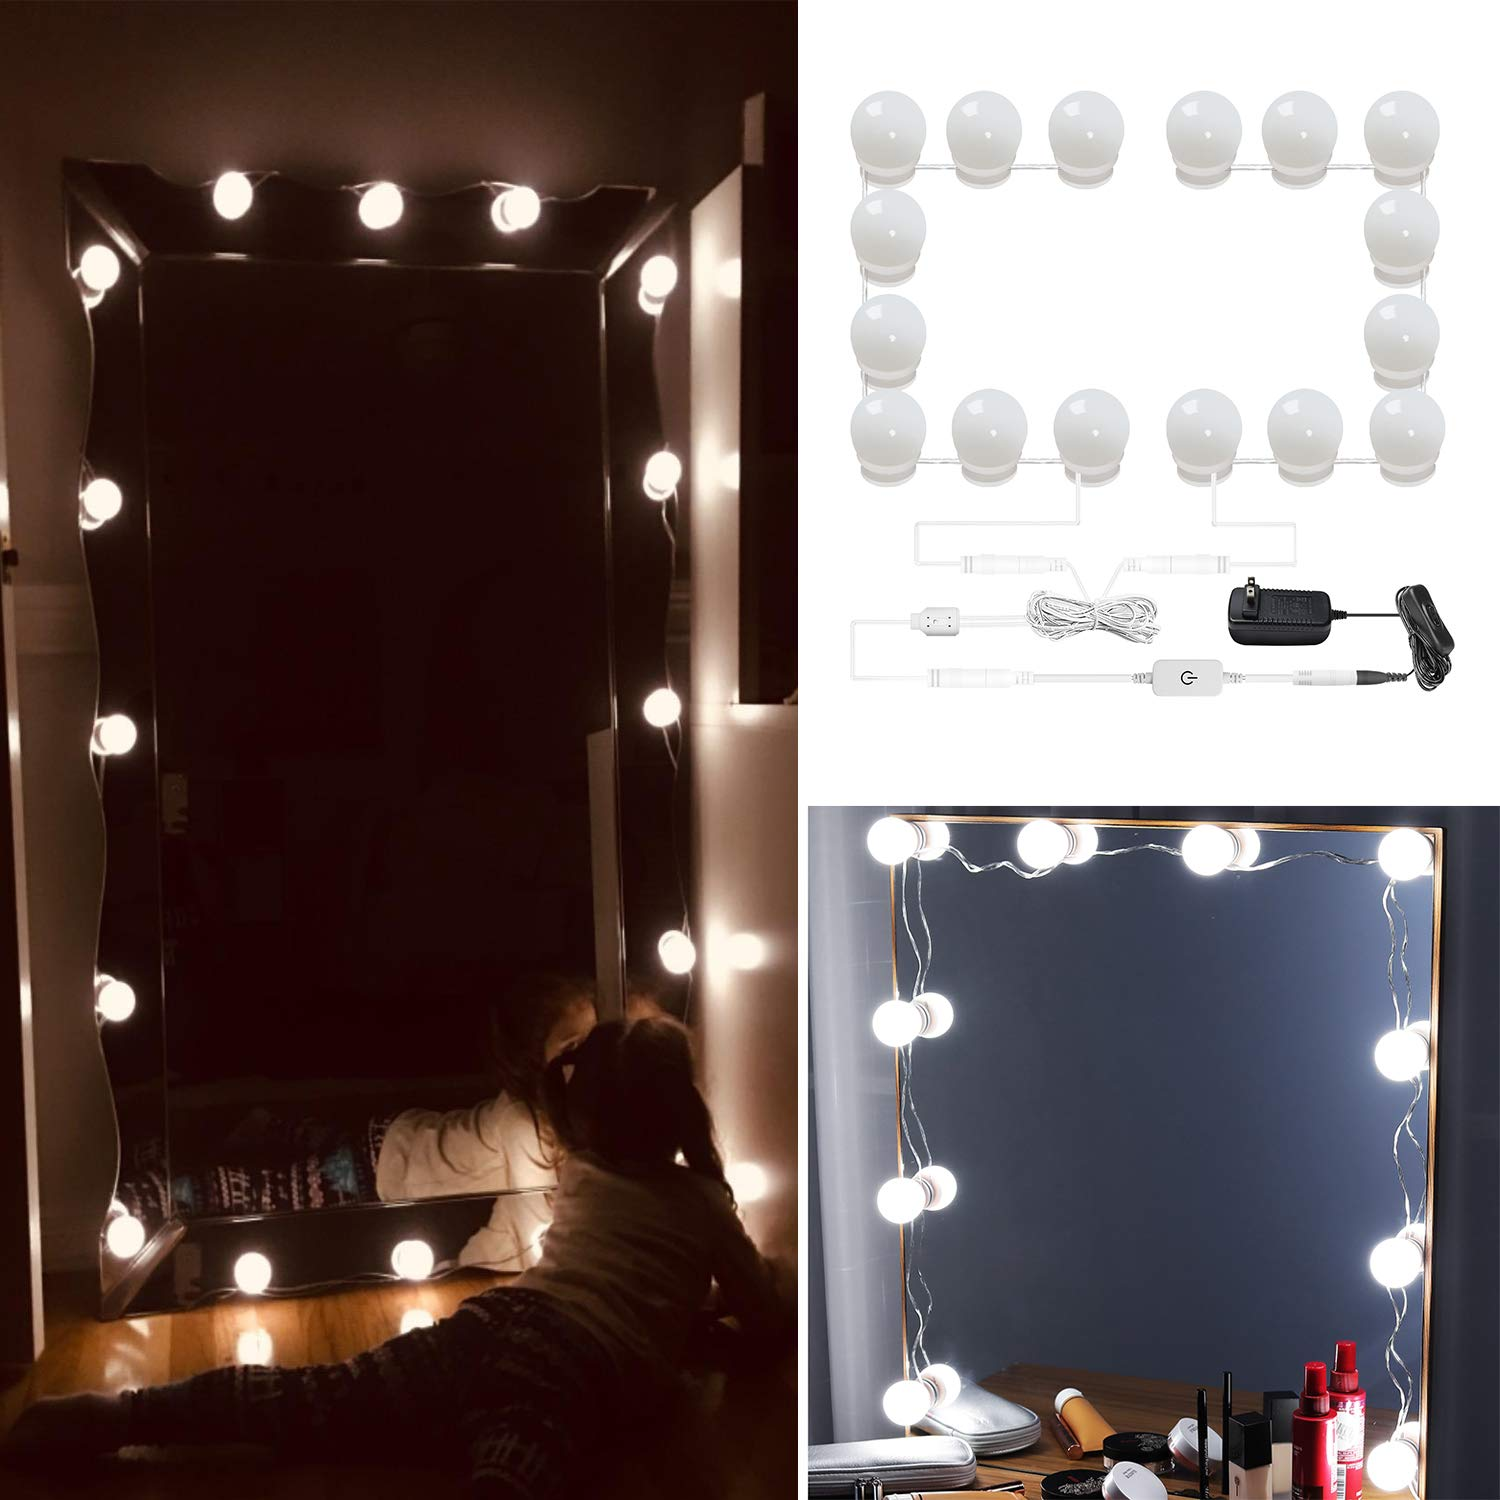 AIBOO Hollywood Style Lighted Vanity Makeup Mirror, LED Vanity Mirror Lights Kit for Dressing Table, Dimmable and Adapter Plug in, Mirror Not Included (16 Bulbs Natural White)